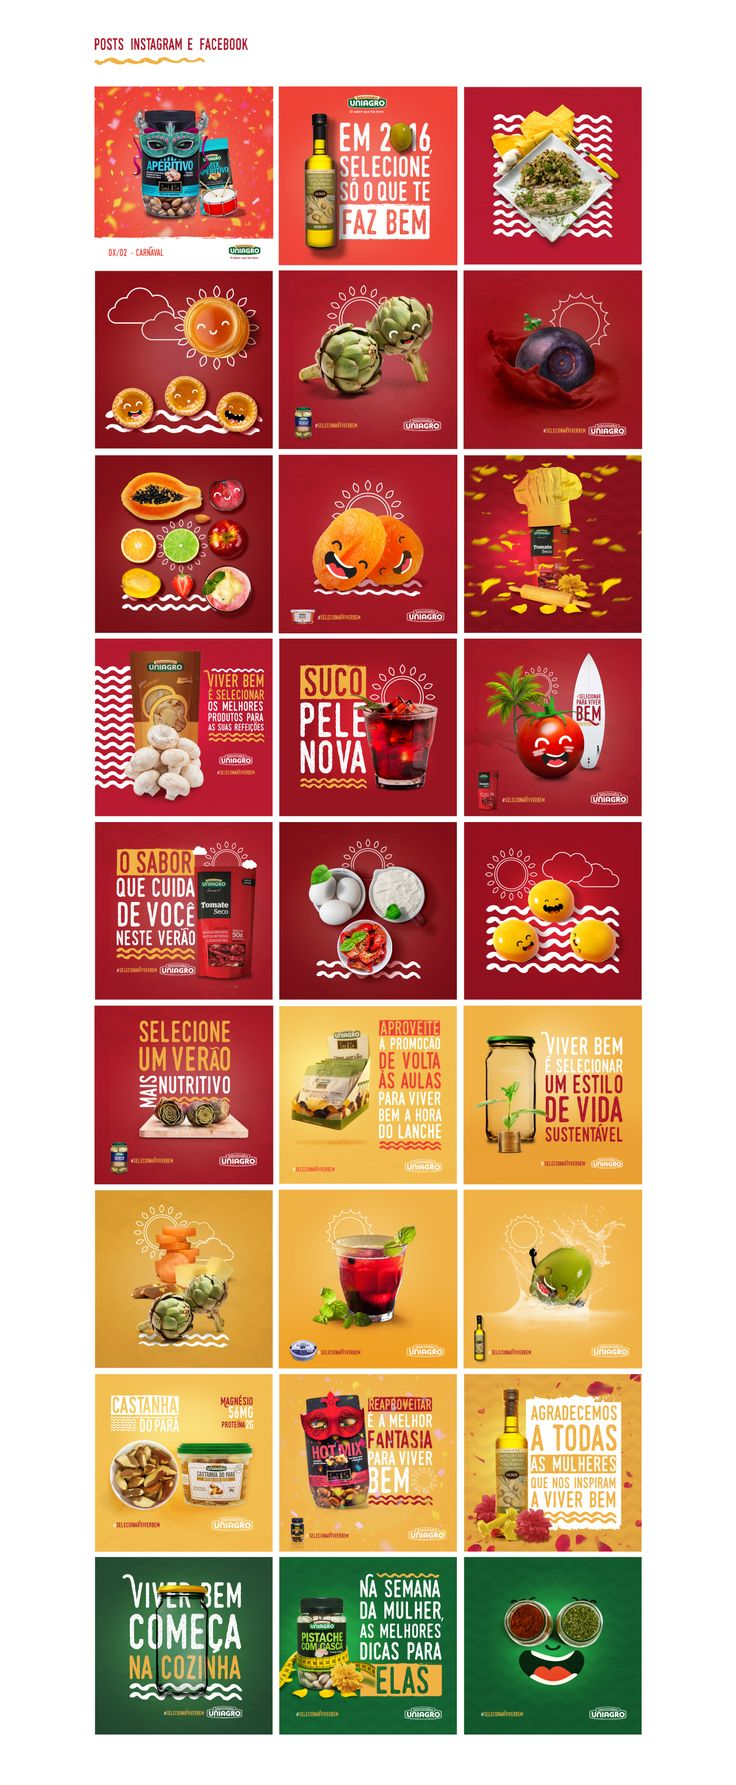 https://social-media-strategy-template.blogspot.com/ #socialmedia Selecionar Para Viver Bem (Social Media) on Behance